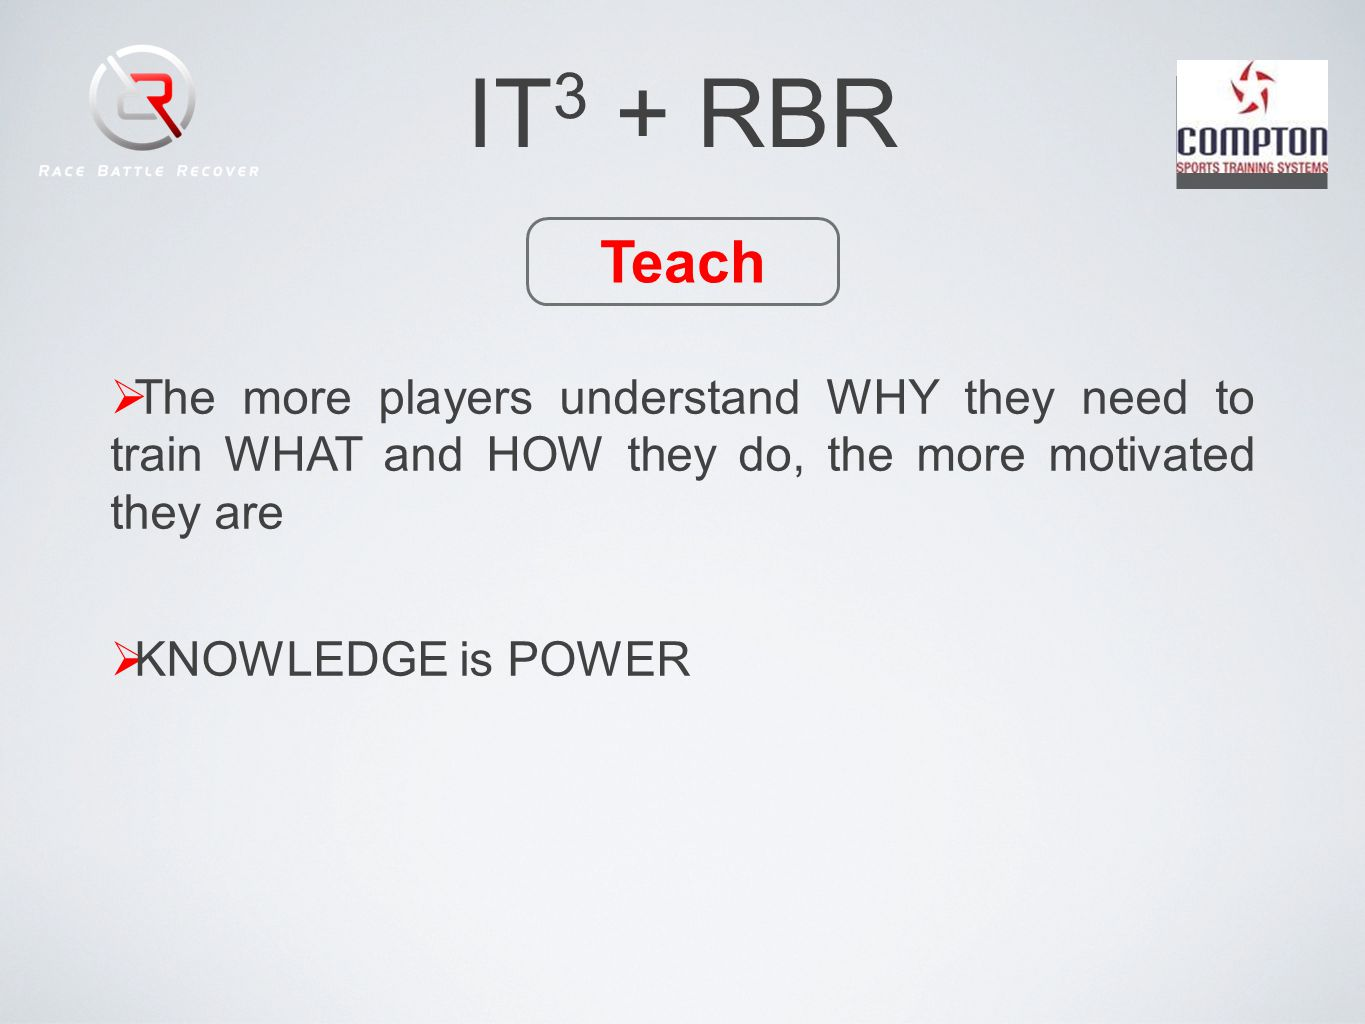 IT 3 + RBR Teach The more players understand WHY they need to train WHAT and HOW they do, the more motivated they are KNOWLEDGE is POWER